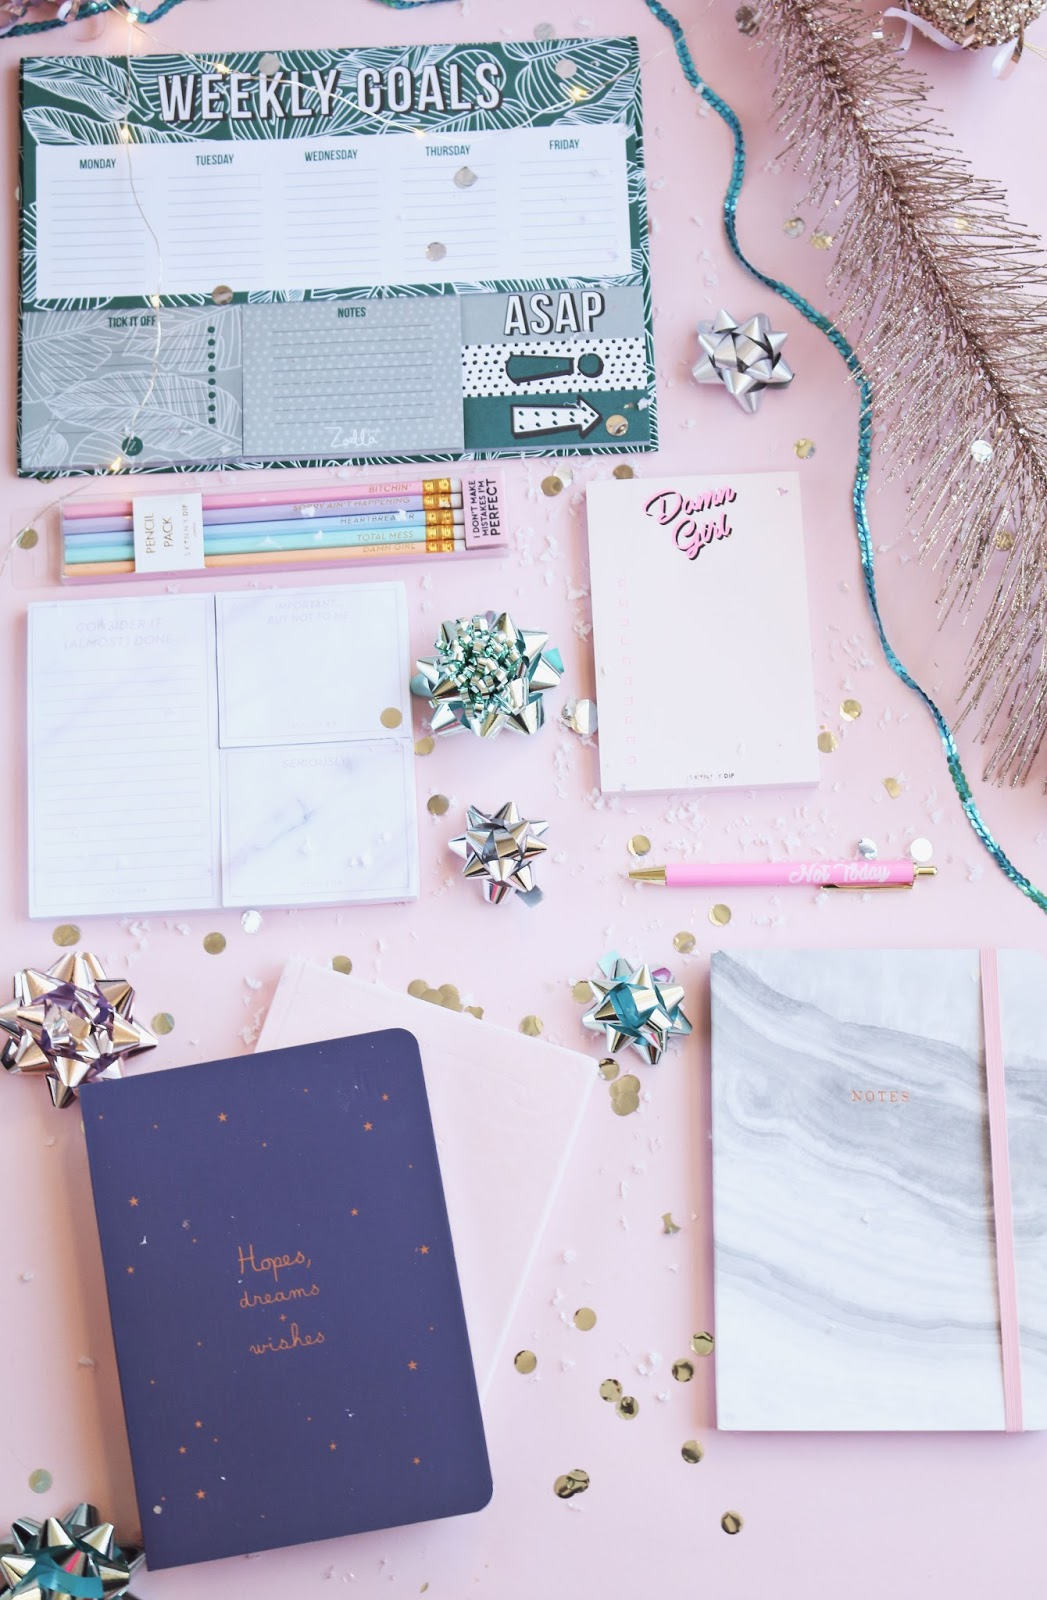 Christmas, Blogmas, gift guide, stationery, flatlay, zoella lifestyle